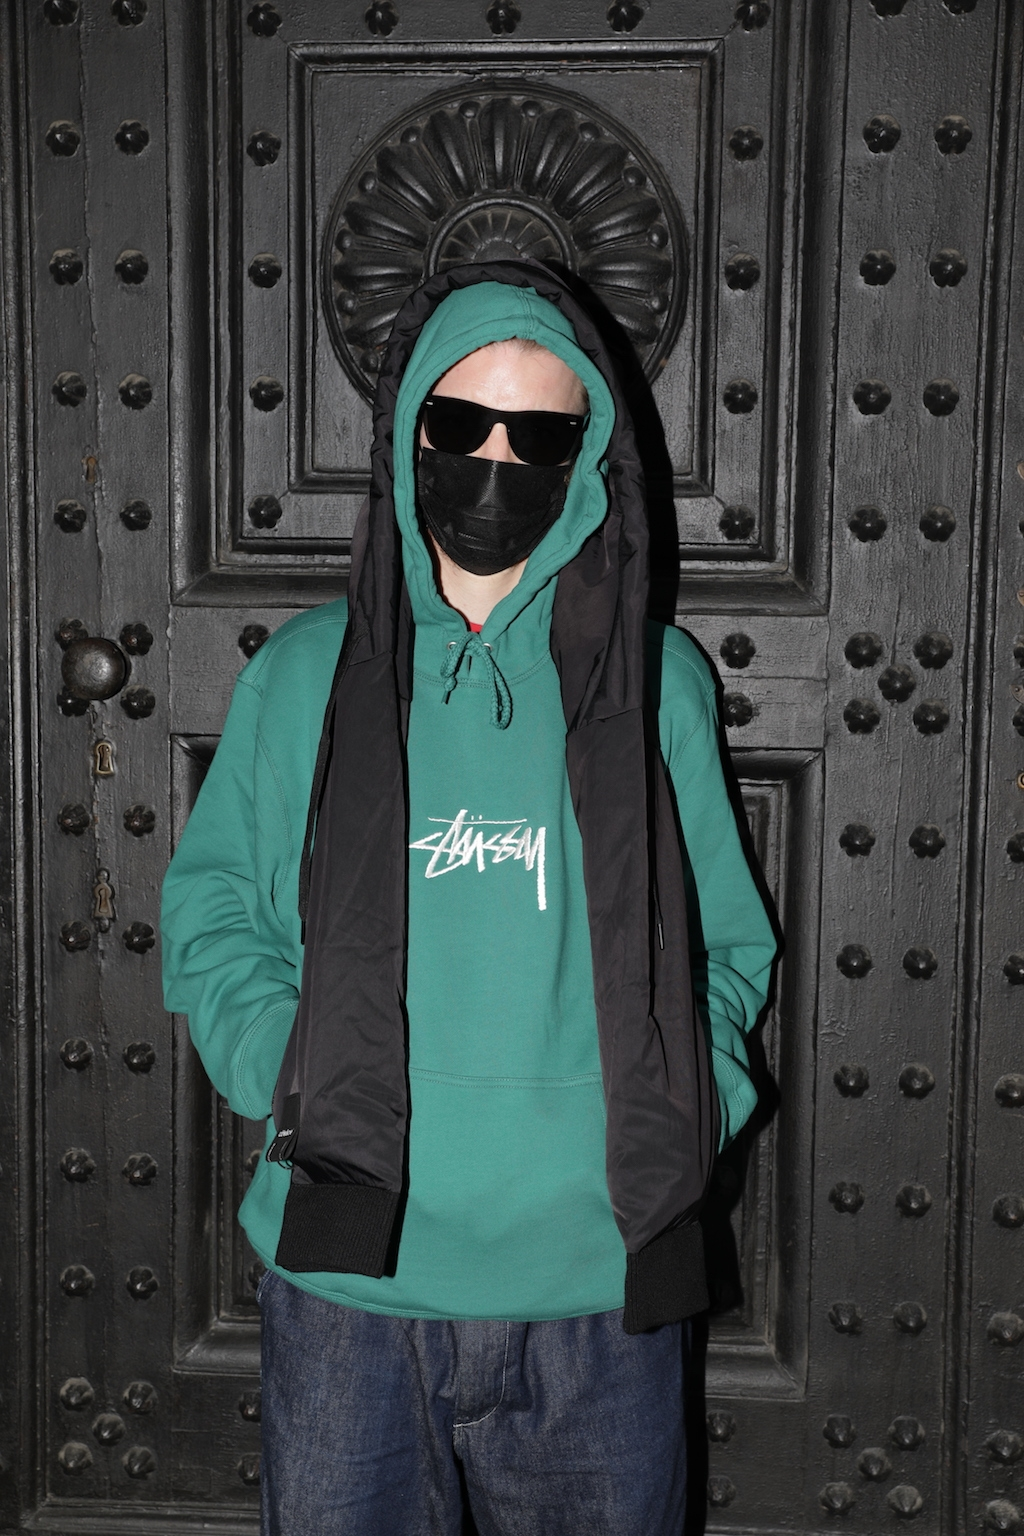 Stussy's T-shirts and Hoodies are back in store